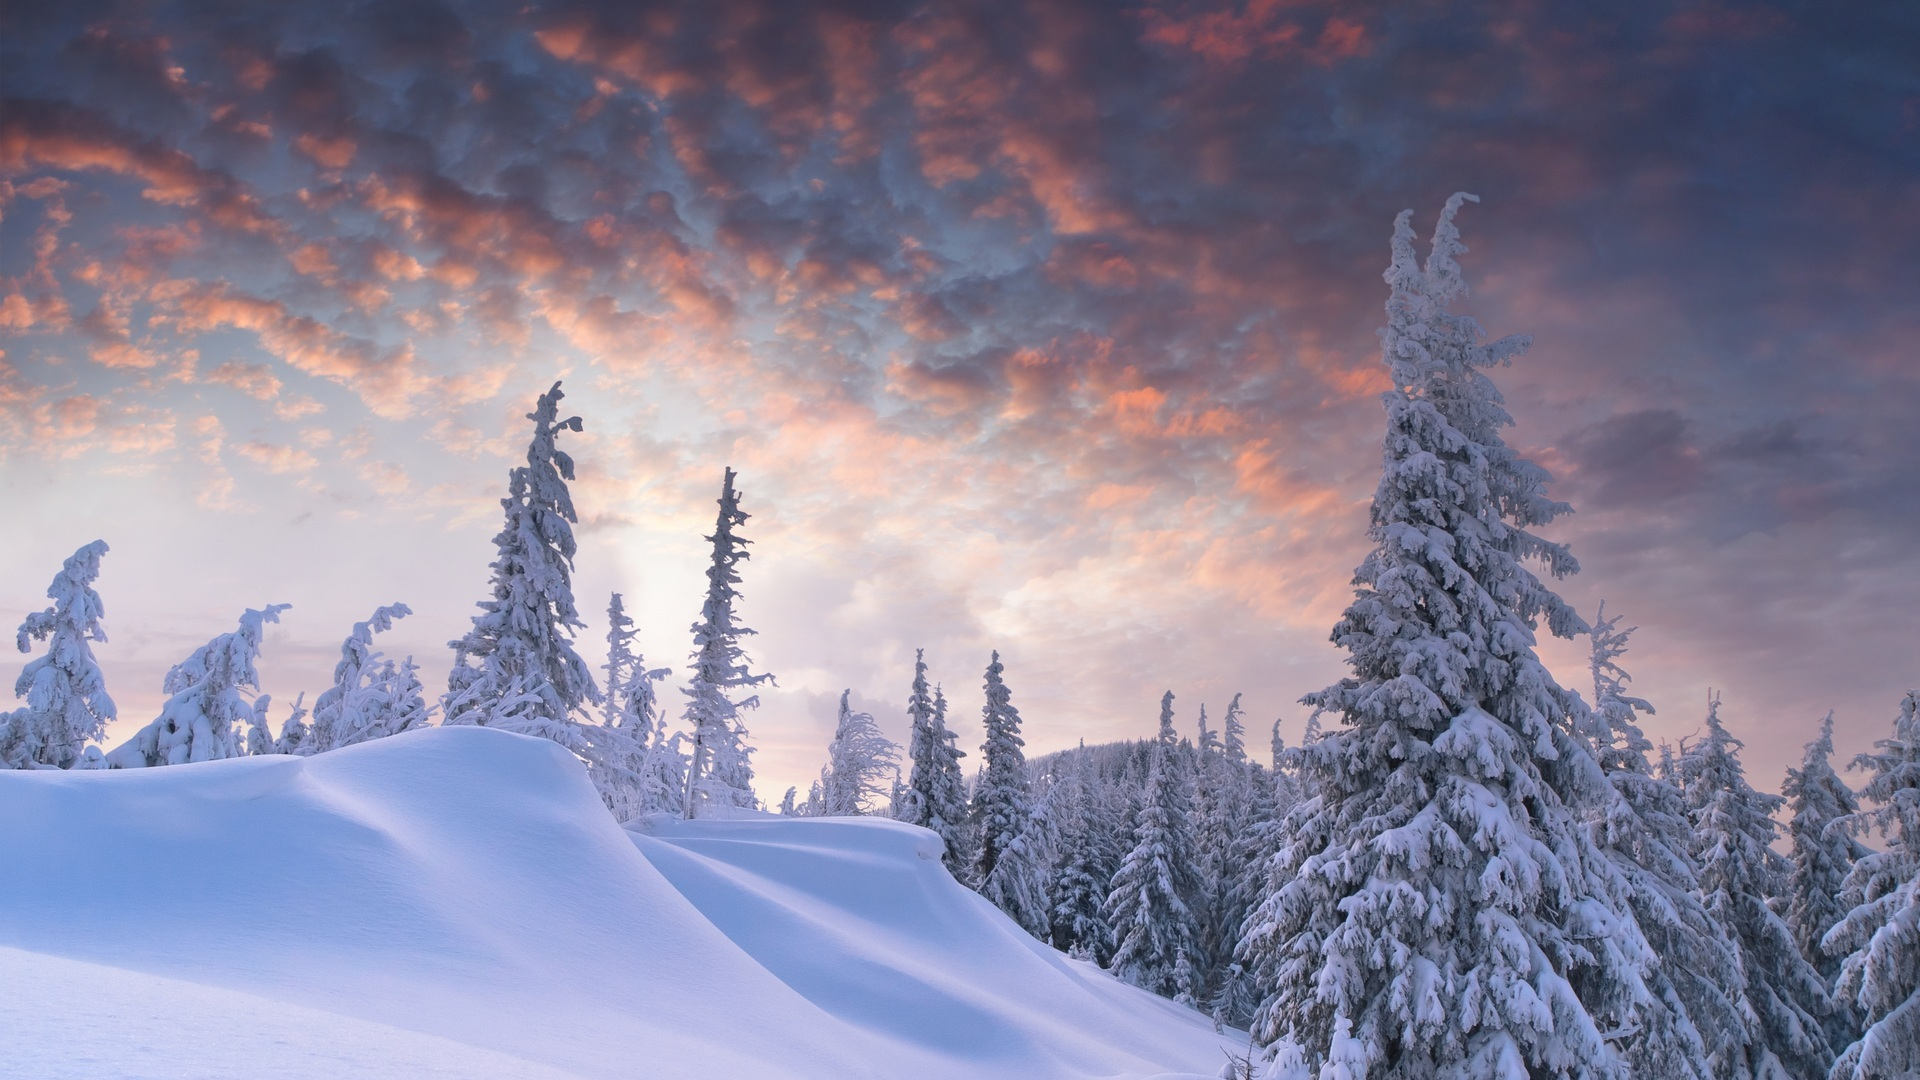 Winter and Snow Wallpaper 1920x1080